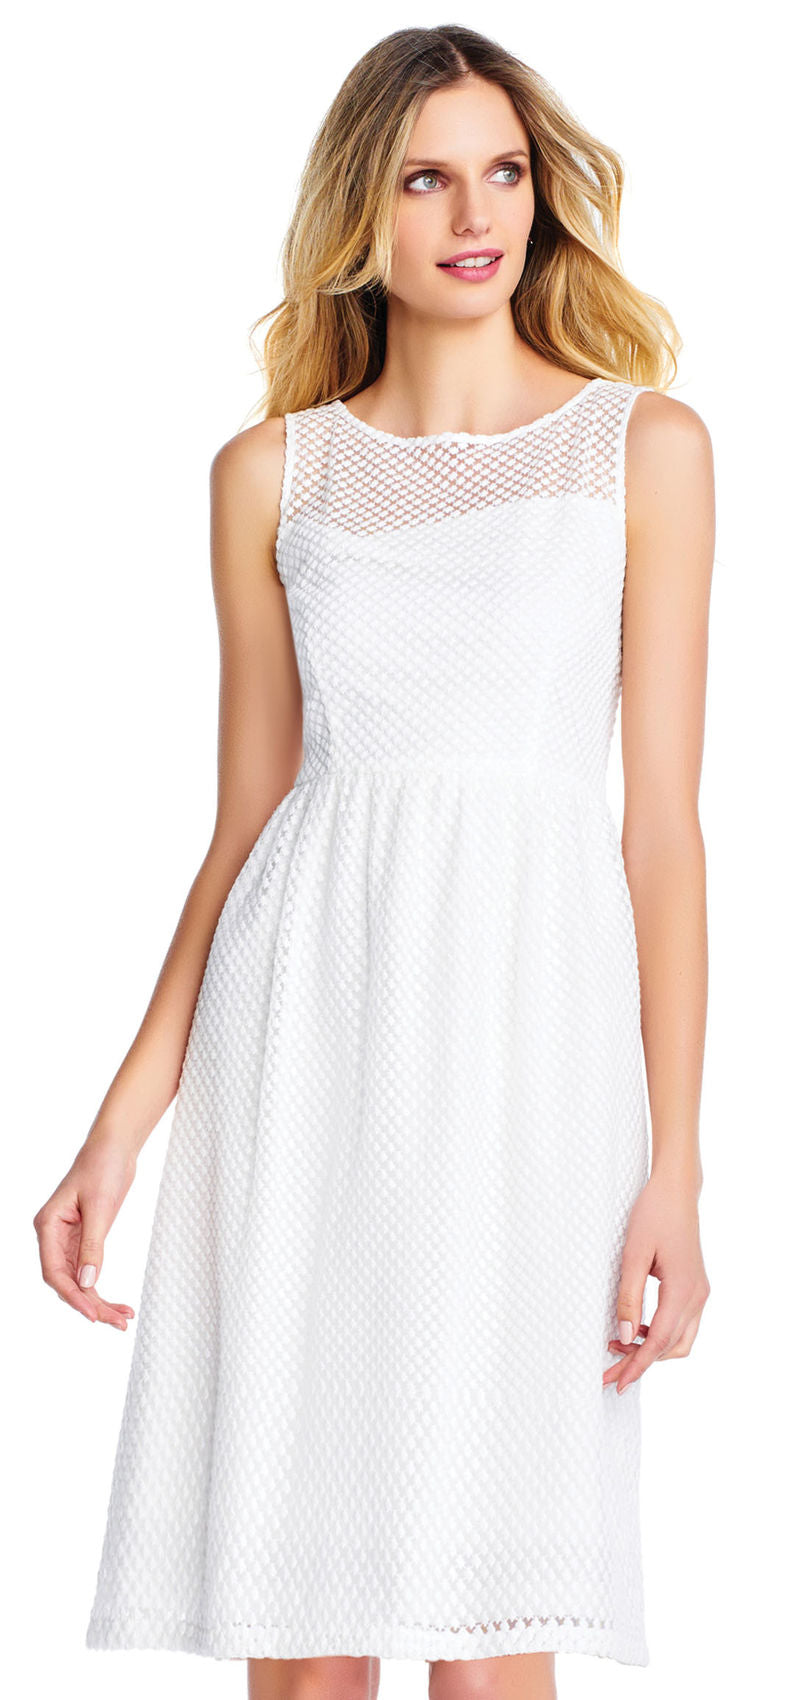 White Starry Patterned Short Dress